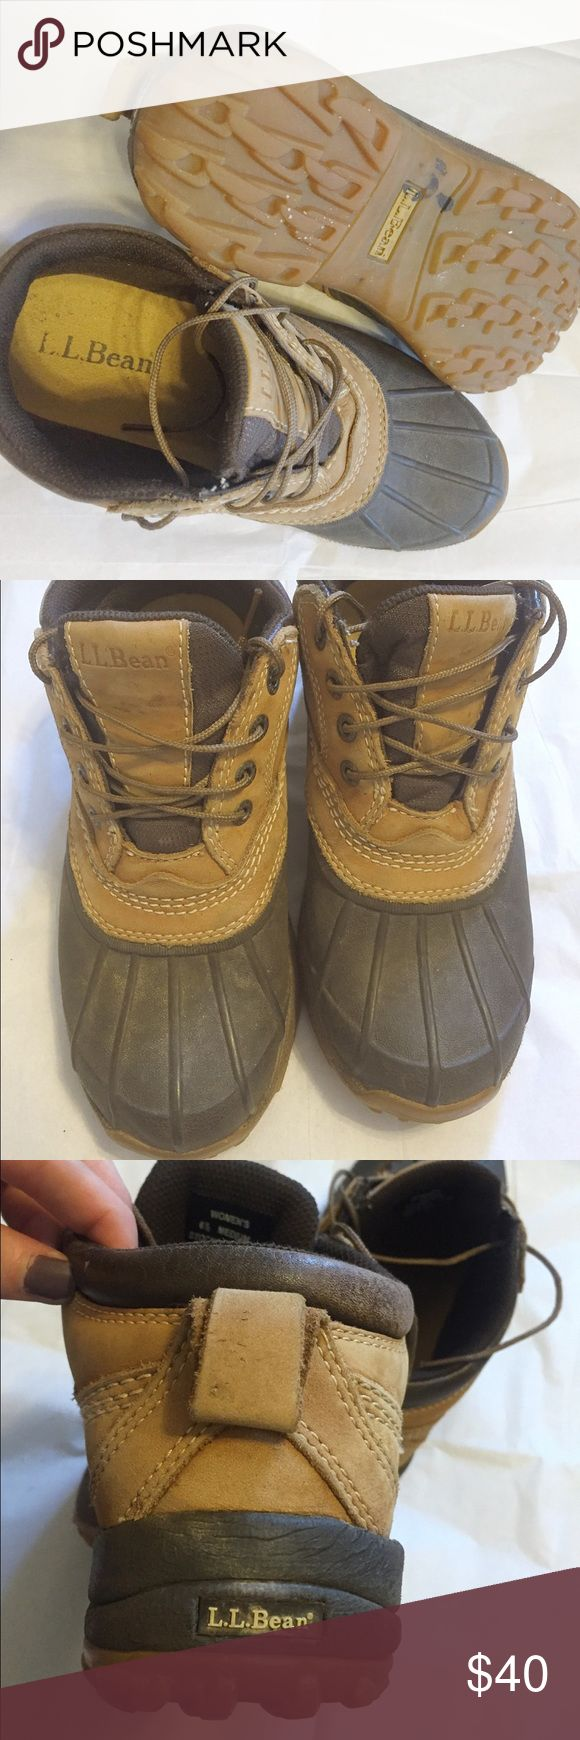 LL Bean Boots! Good condition! I used the boots for one winter but I just don't wear them any more. They are used but still have a lot of wear in them and are great for snow and ice or just rainy days. Also they're ll bean size 6.5 so they fit from a 6.5 to 7.5 comfortably! L.L. Bean Shoes Winter & Rain Boots